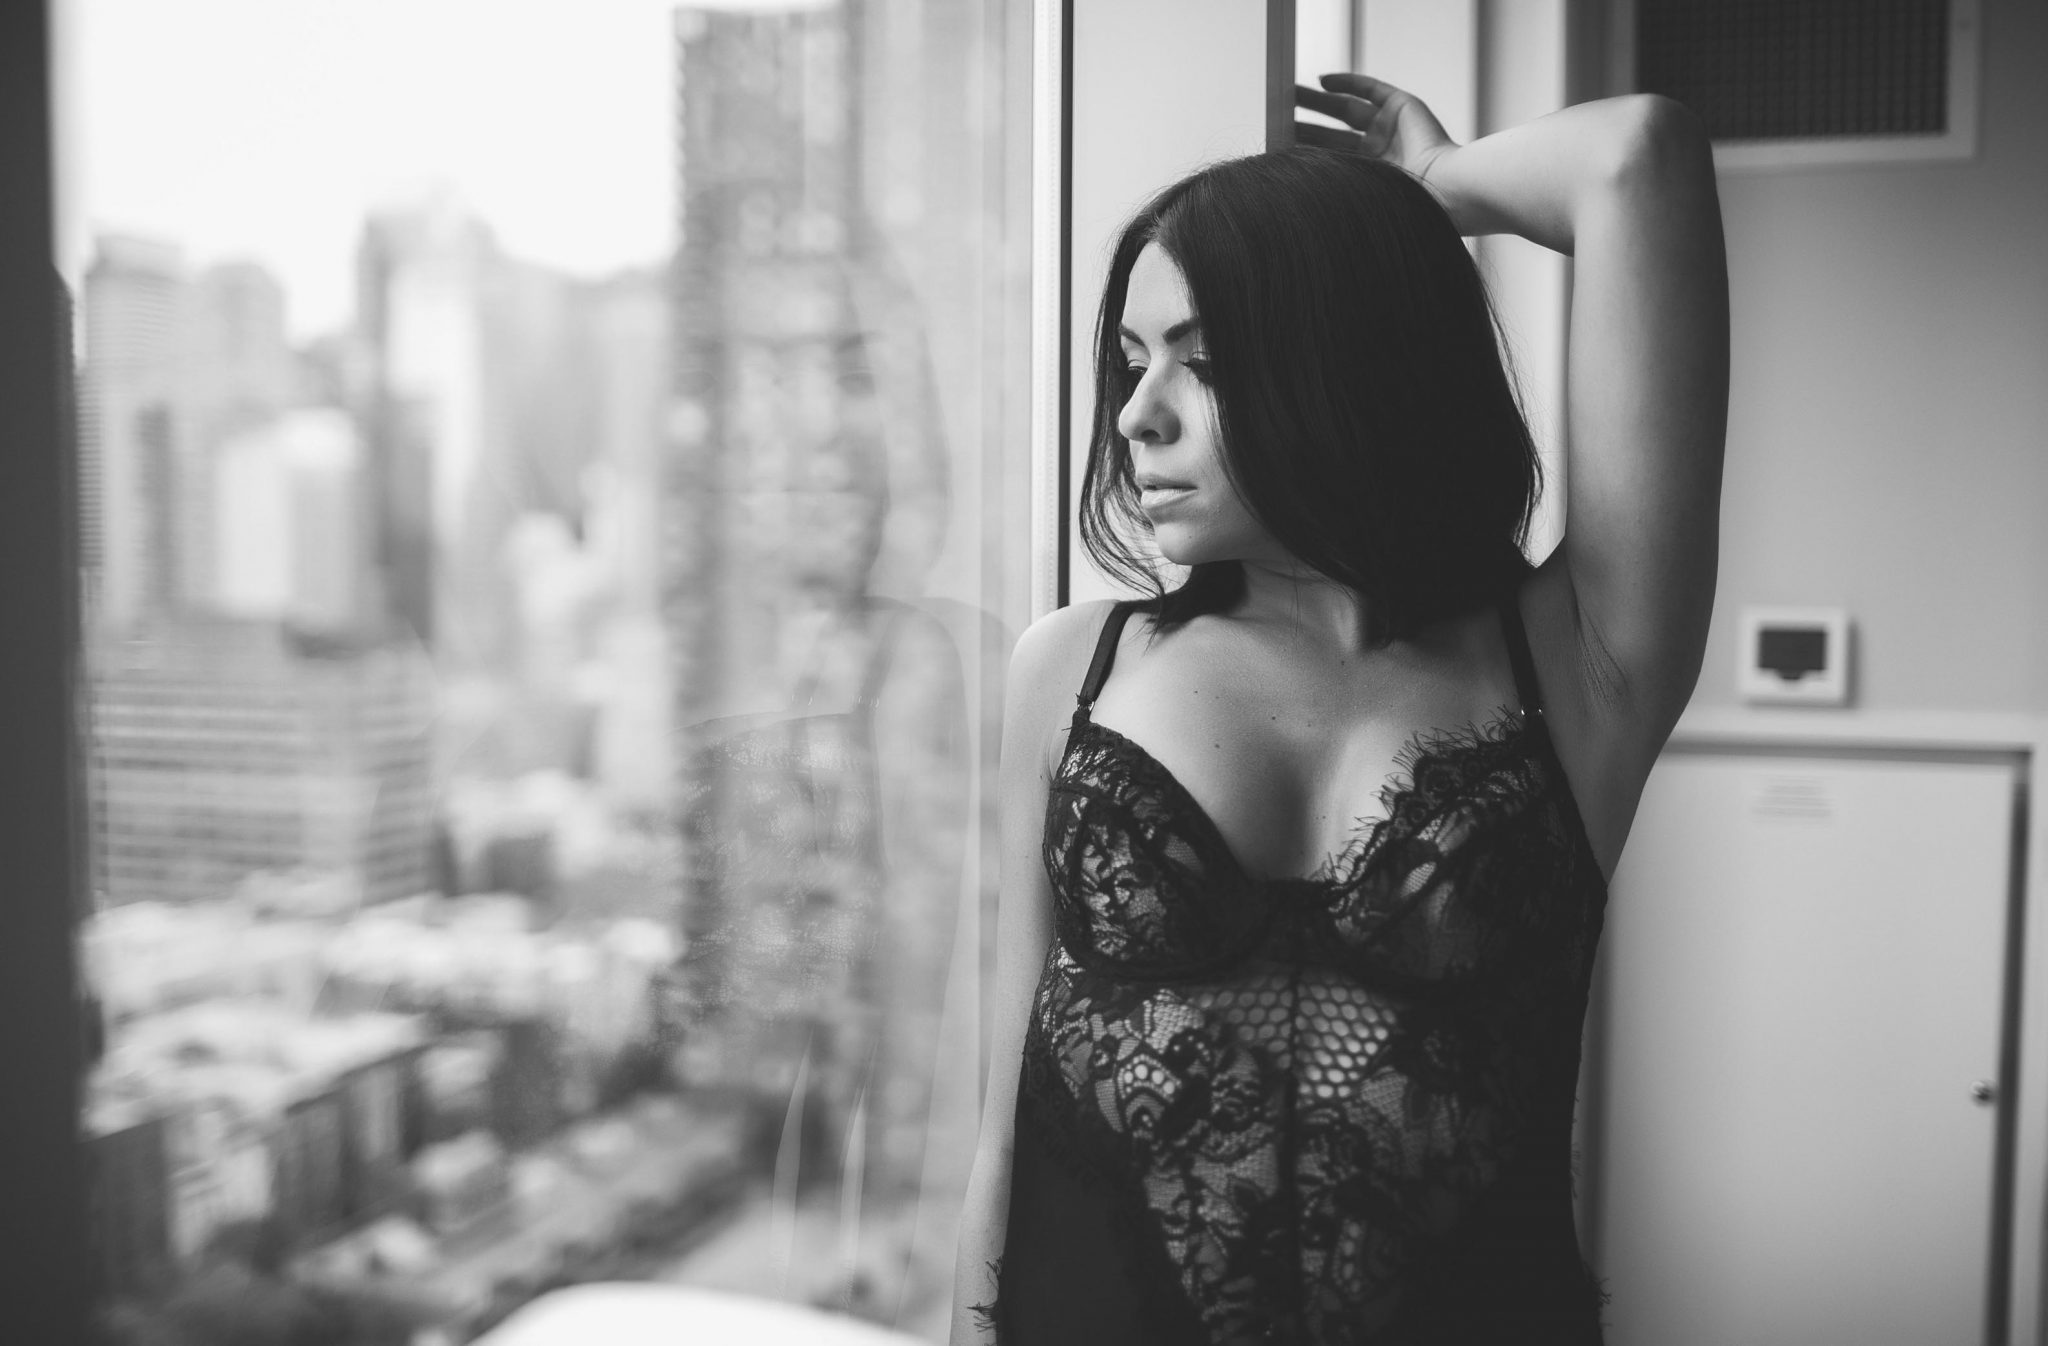 A woman in lingerie staring out the window at NYC